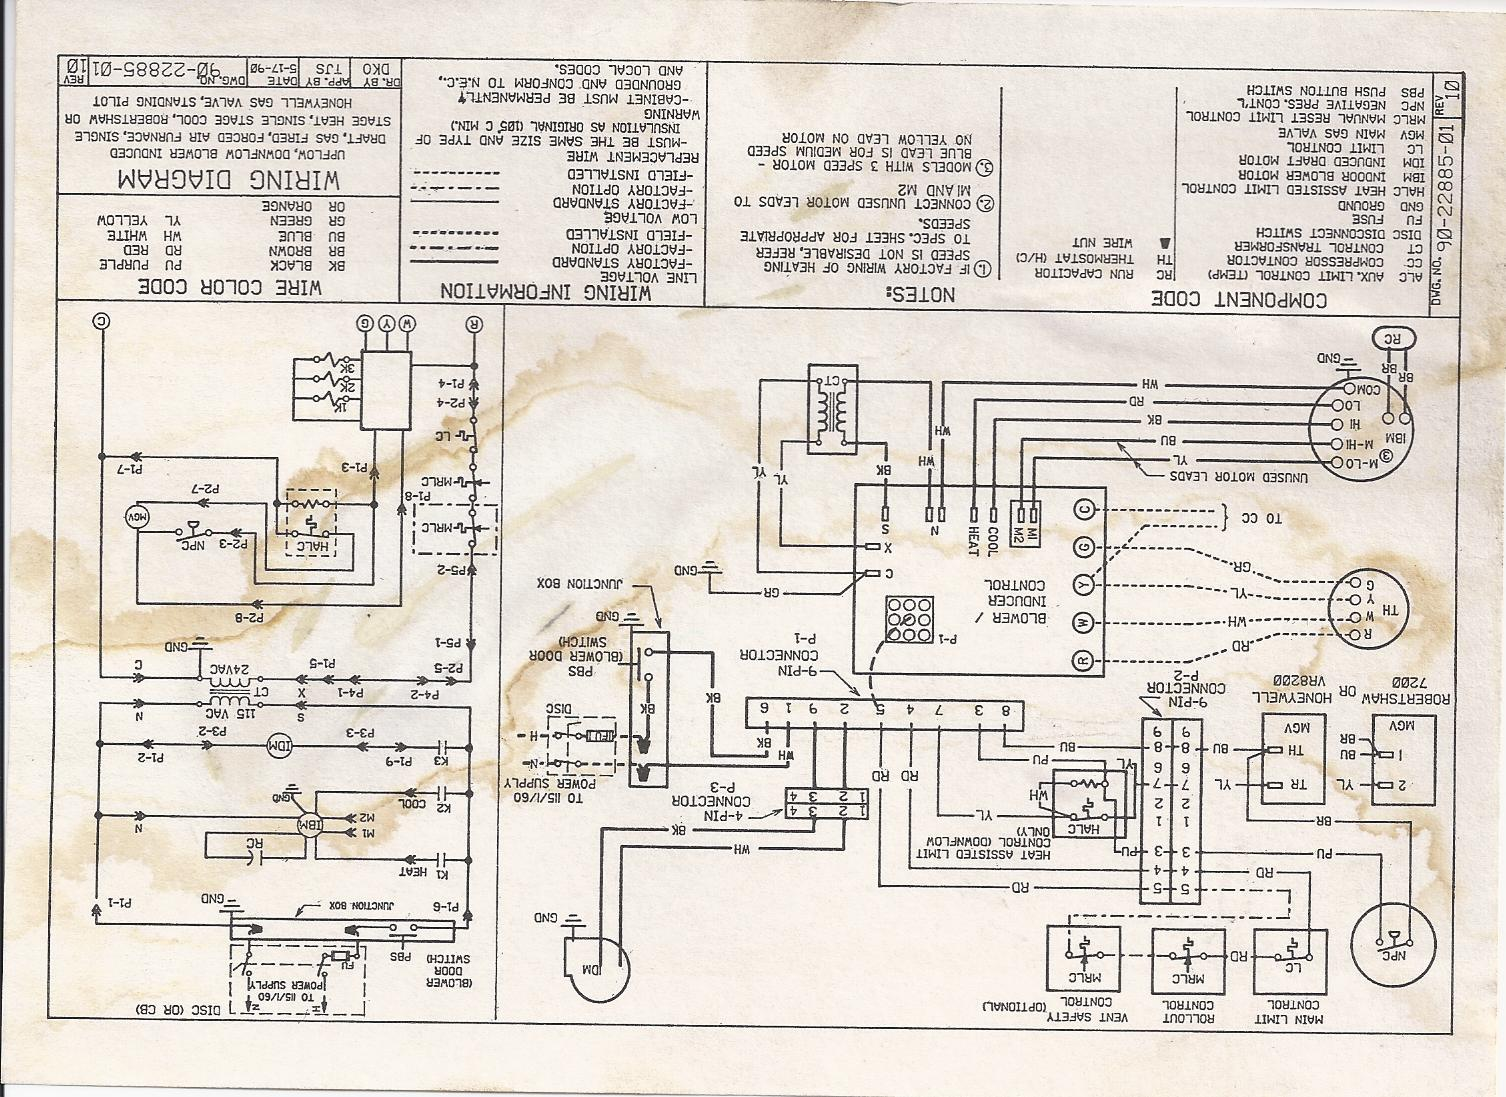 Wiring Diagram For Ruud Heat Pump – The Wiring Diagram